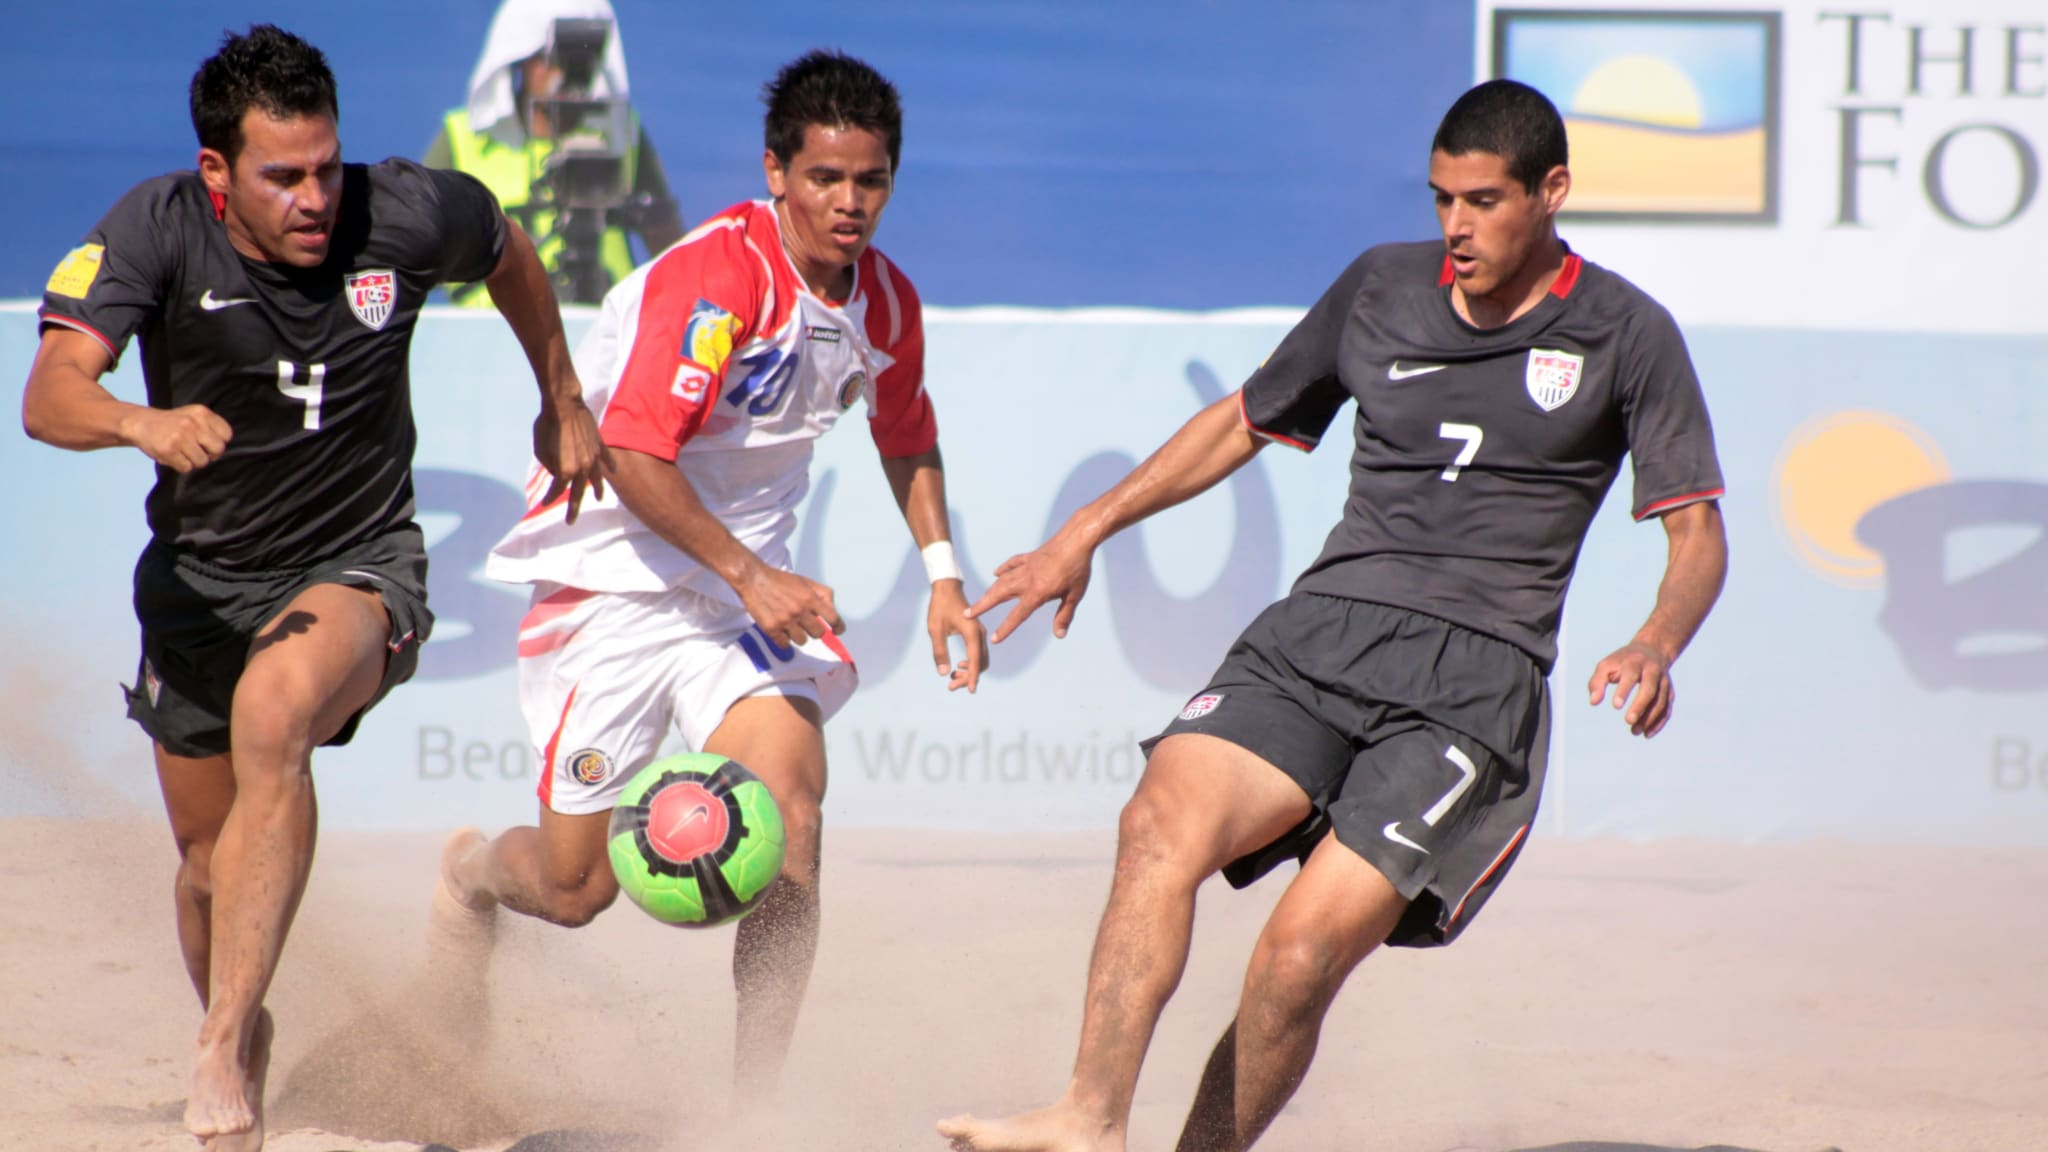 USA, Costa Rica, Trinidad & Togabo and Turks & Caicos feature in Group C of the 2021 Concacaf Beach Soccer Championship in Alajuela, Costa Rica.